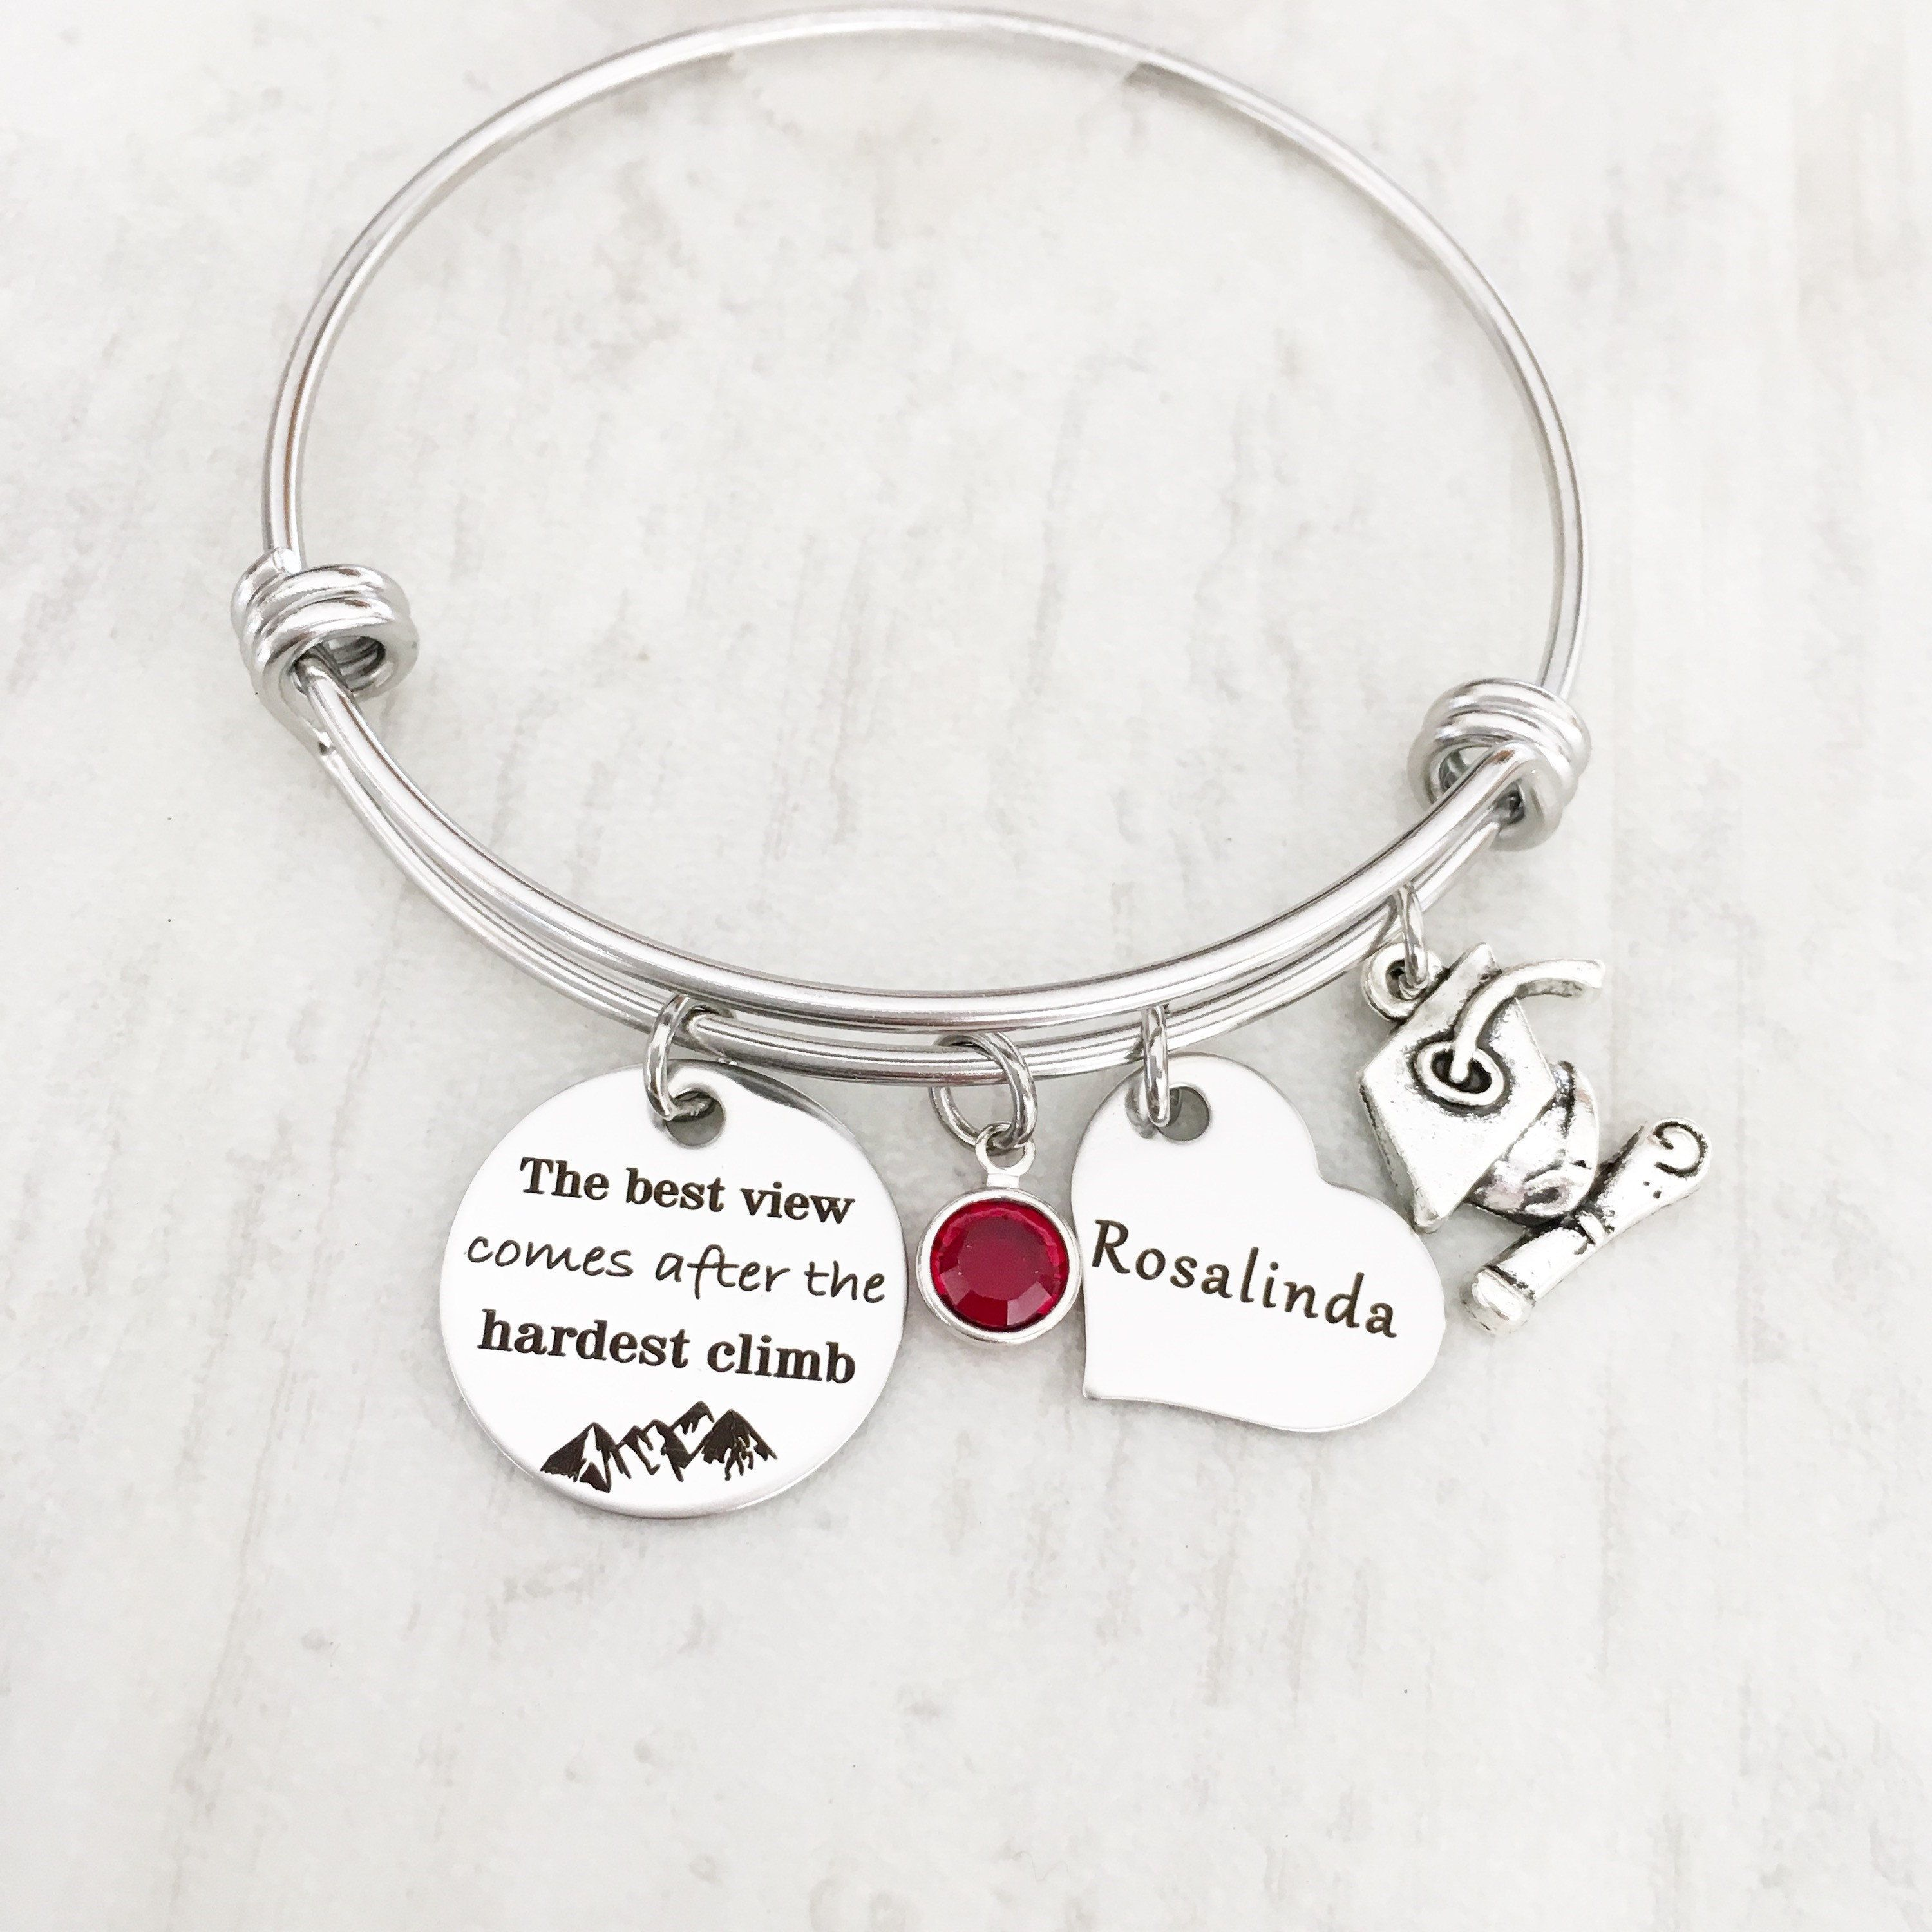 2018 Graduating Gift For Her Personalized Graduation Inspirational High School And College Bracelet